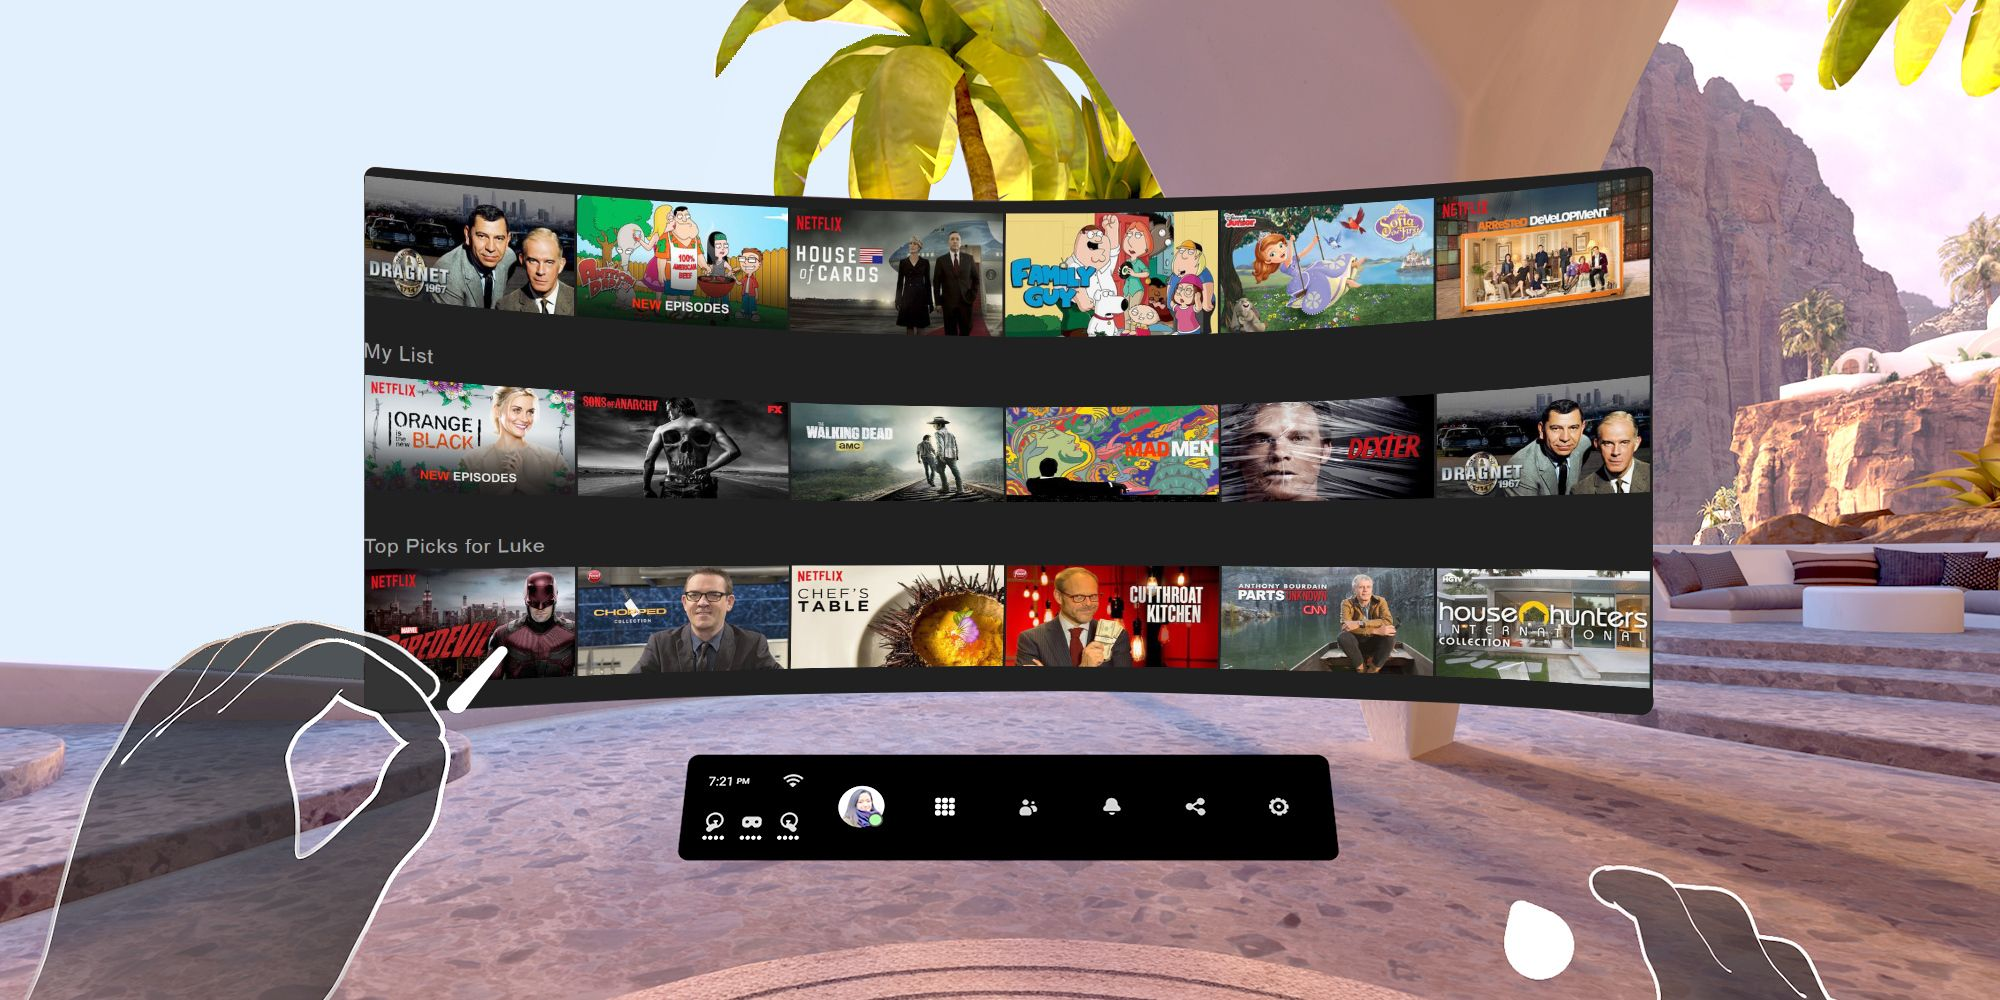 Watch Movies in VR on your Oculus Quests